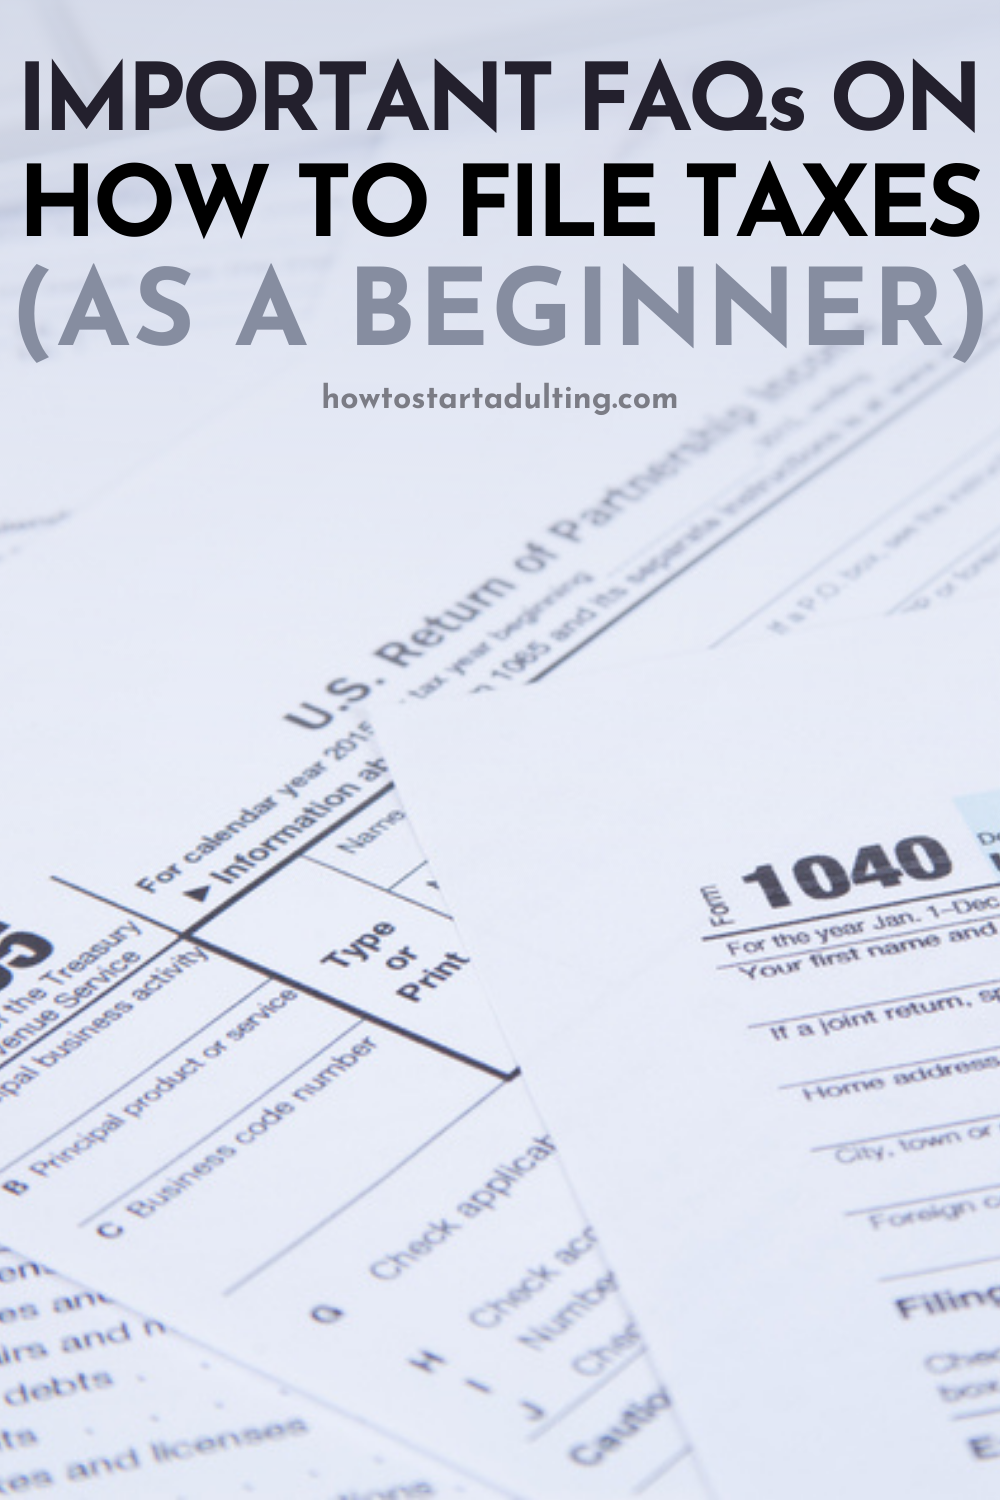 The FAQs On How To File Taxes As A Beginner, Tips on filing taxes for the first time